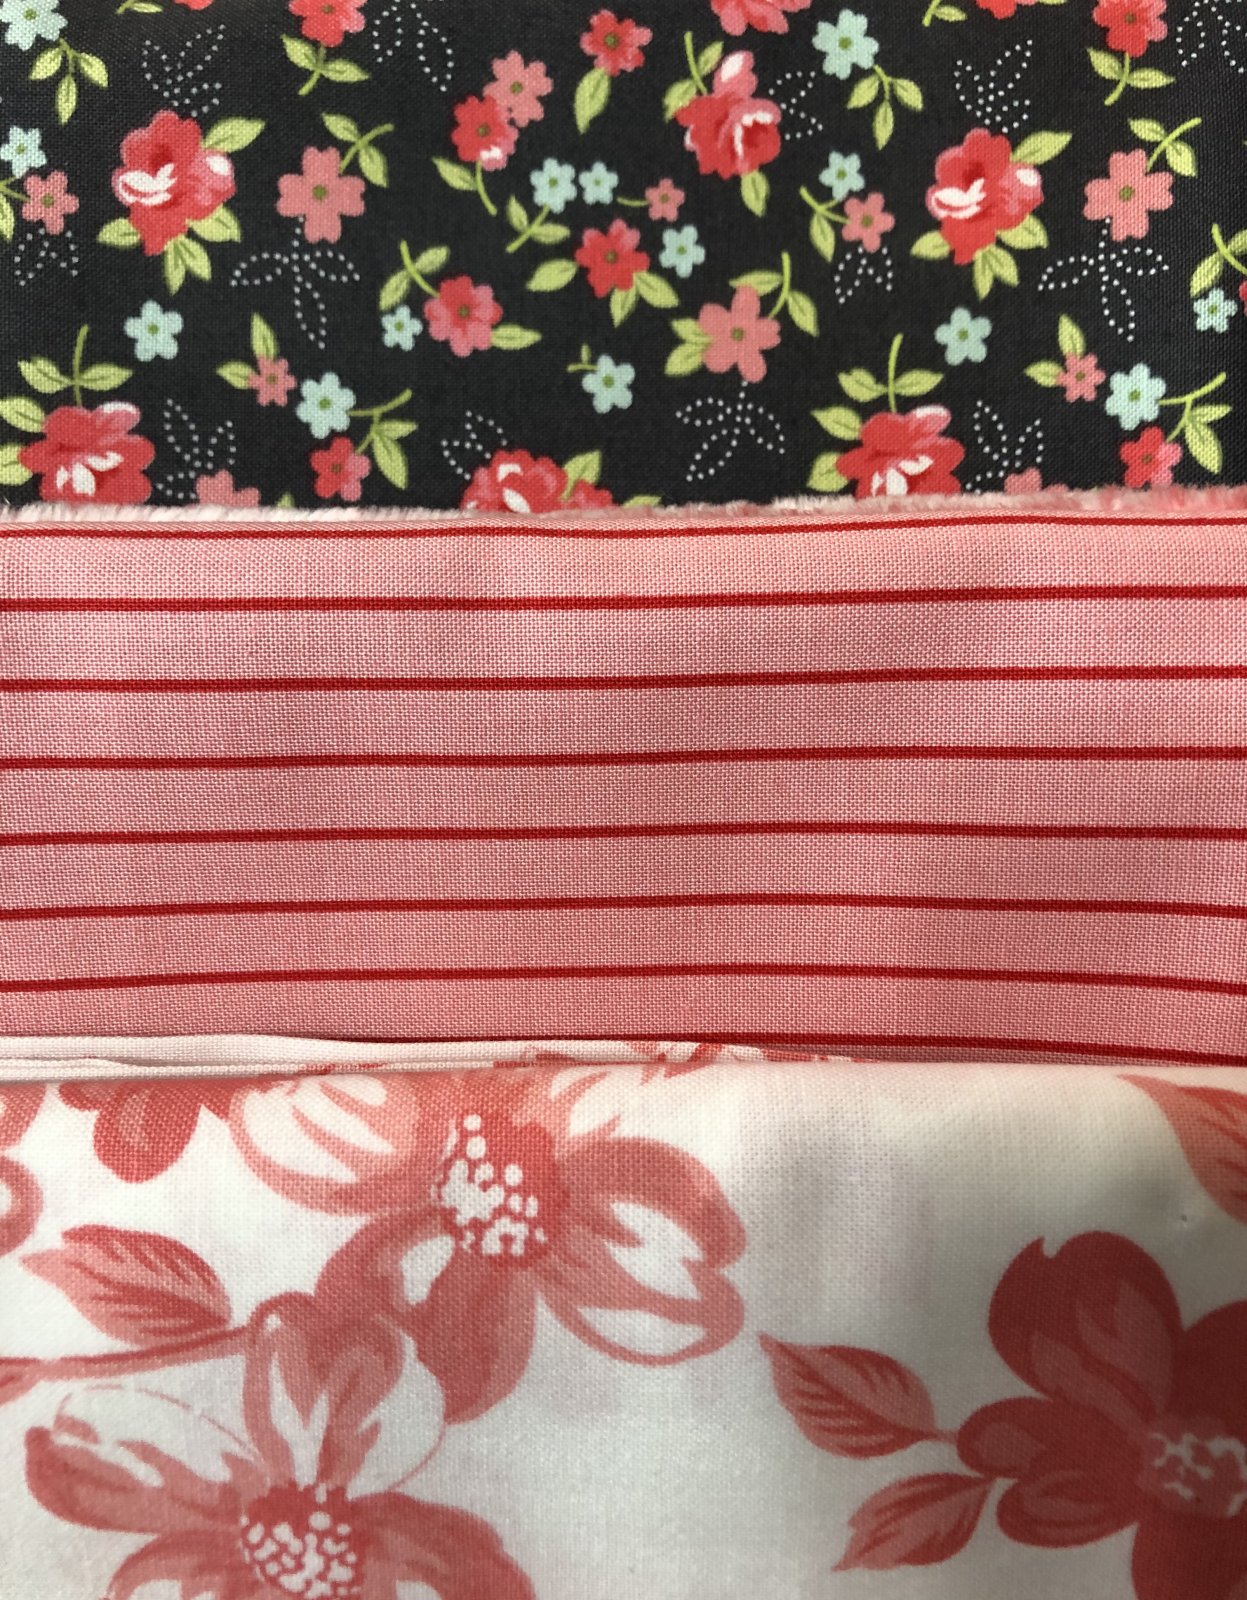 3 Yd Bundle Gray and Pink Floral